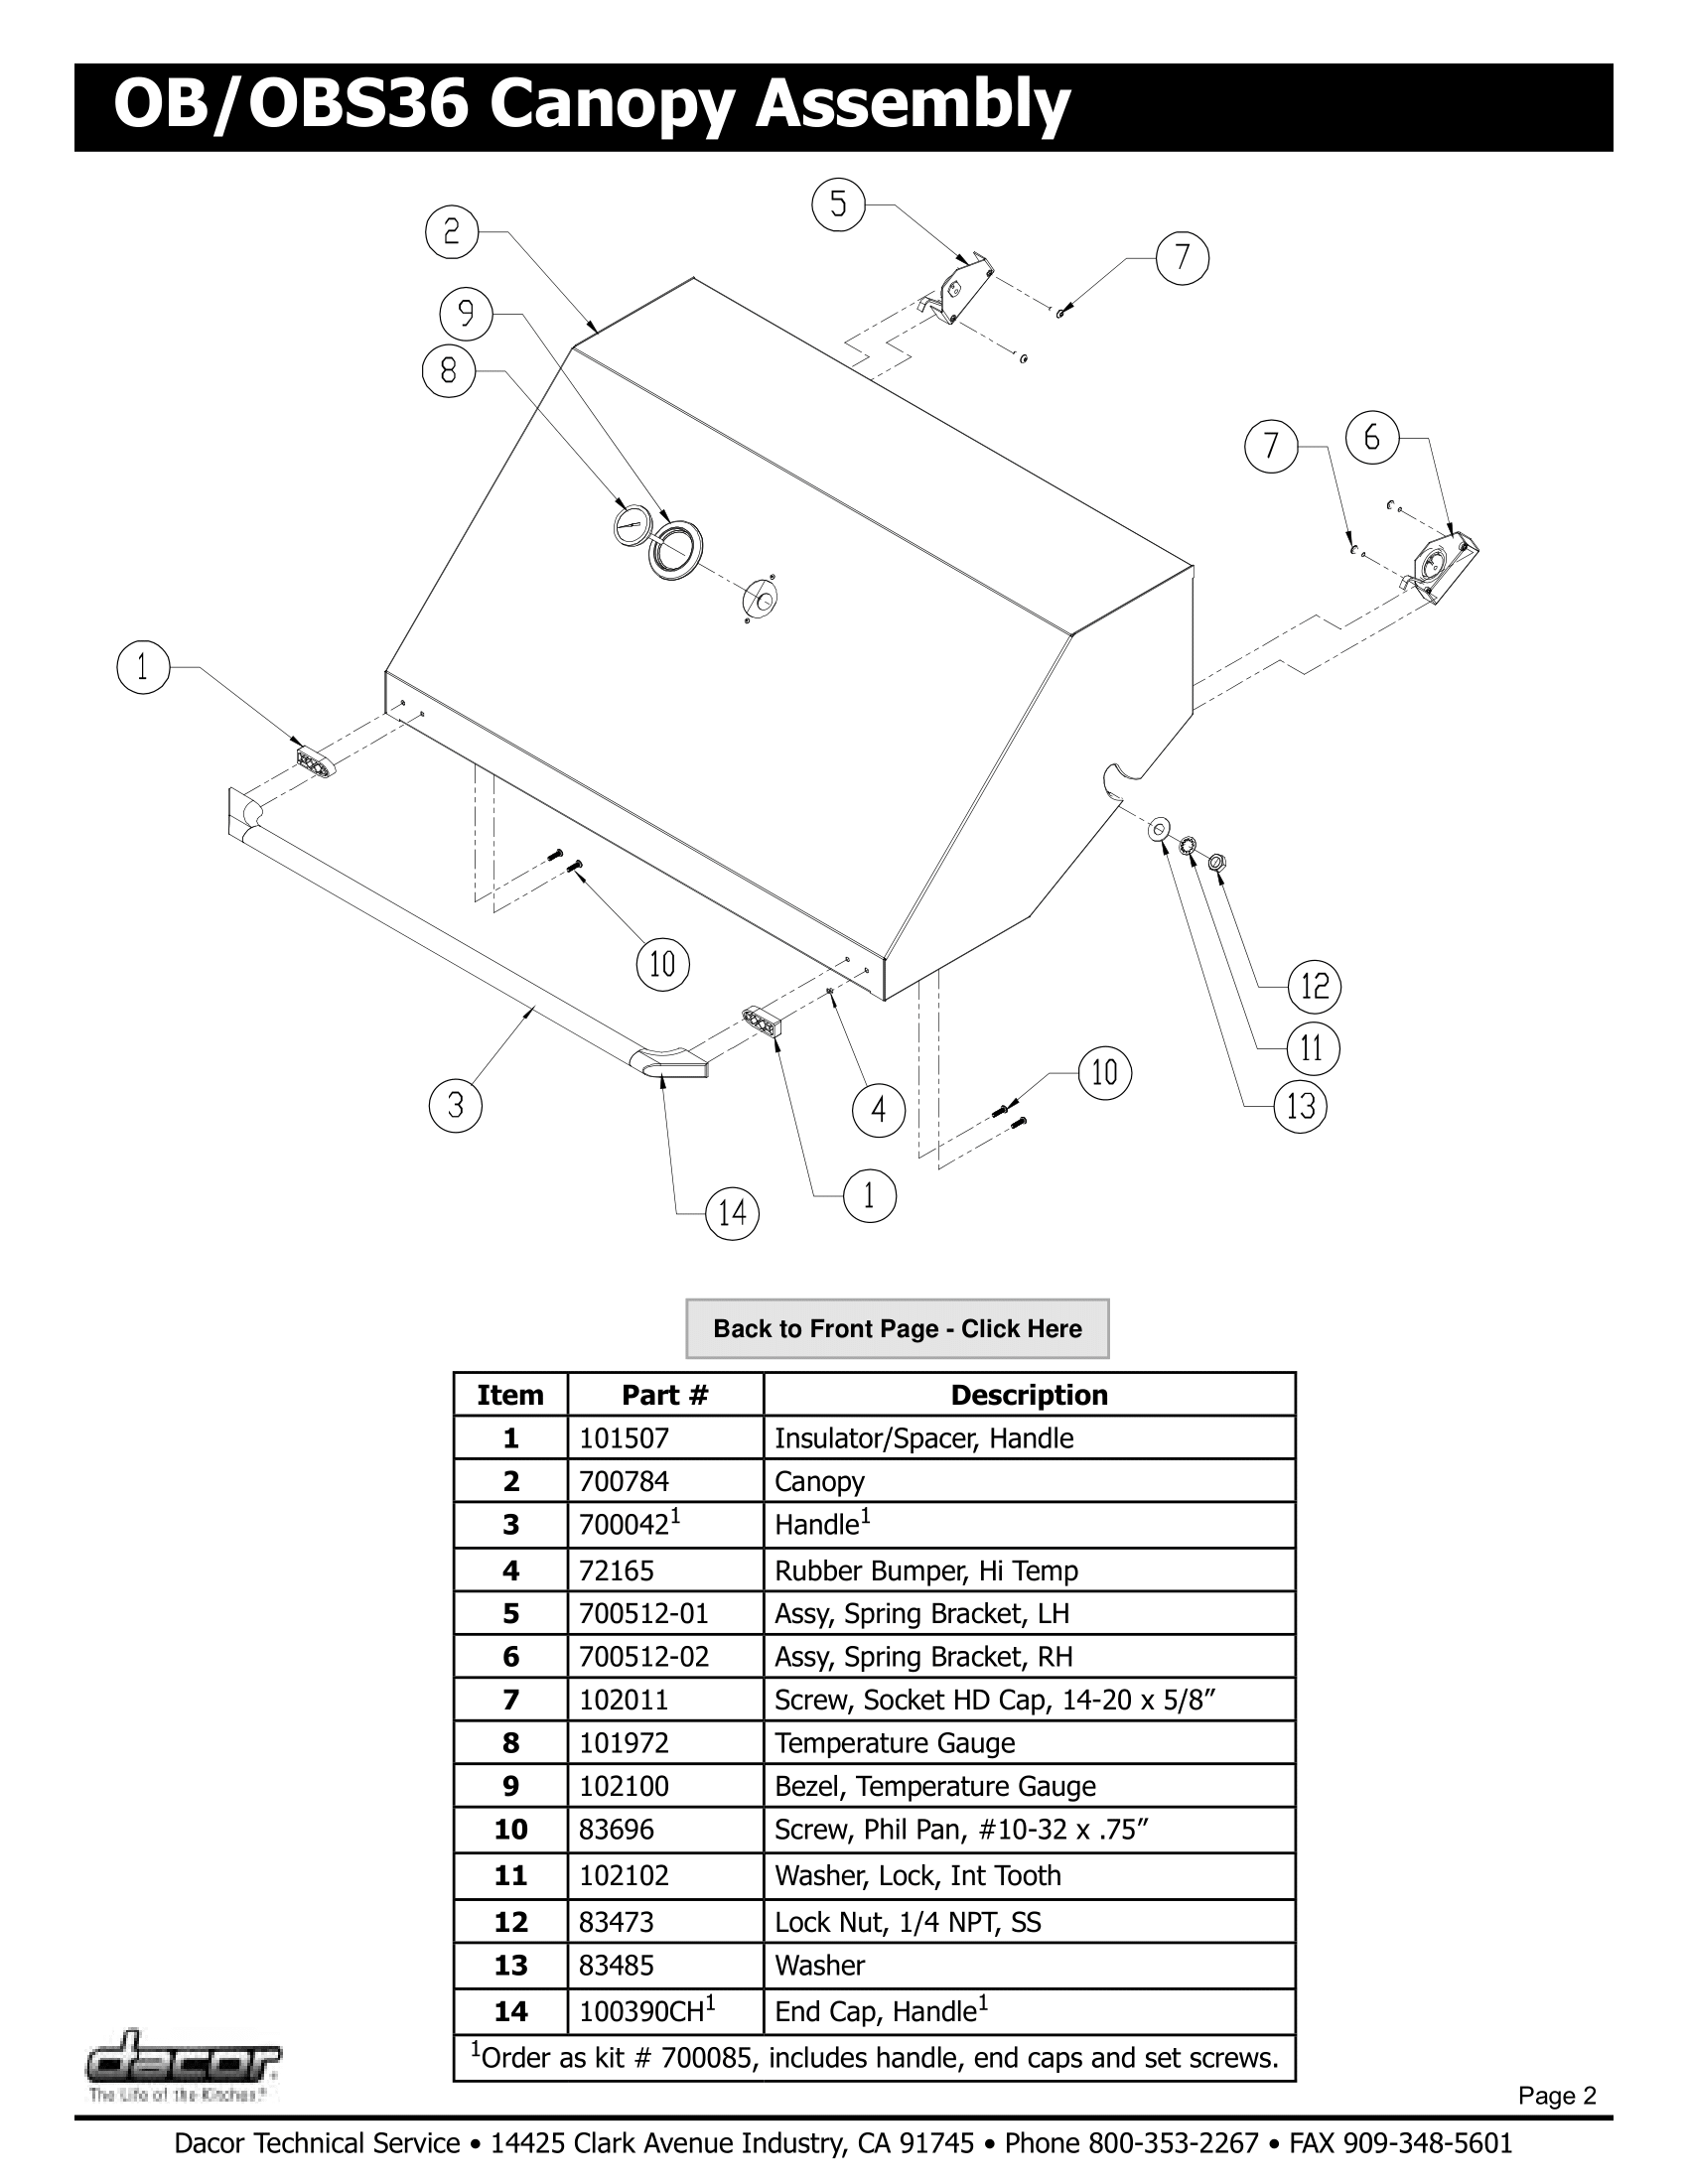 Dacor OBS36 Canopy Assembly Schematic